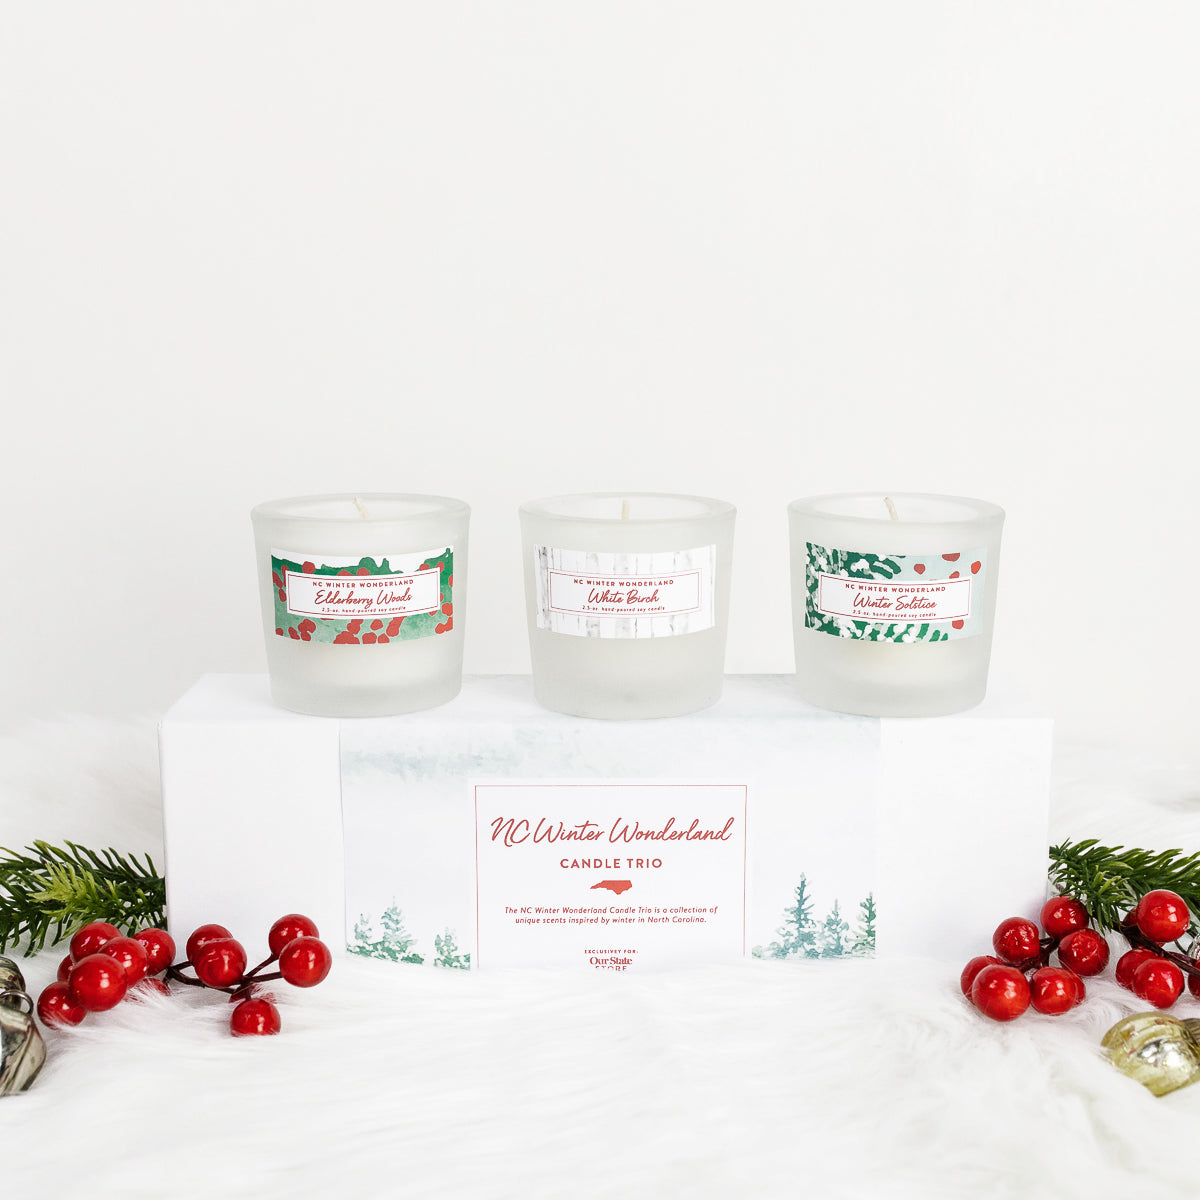 NC Winter Wonderland Candle Trio